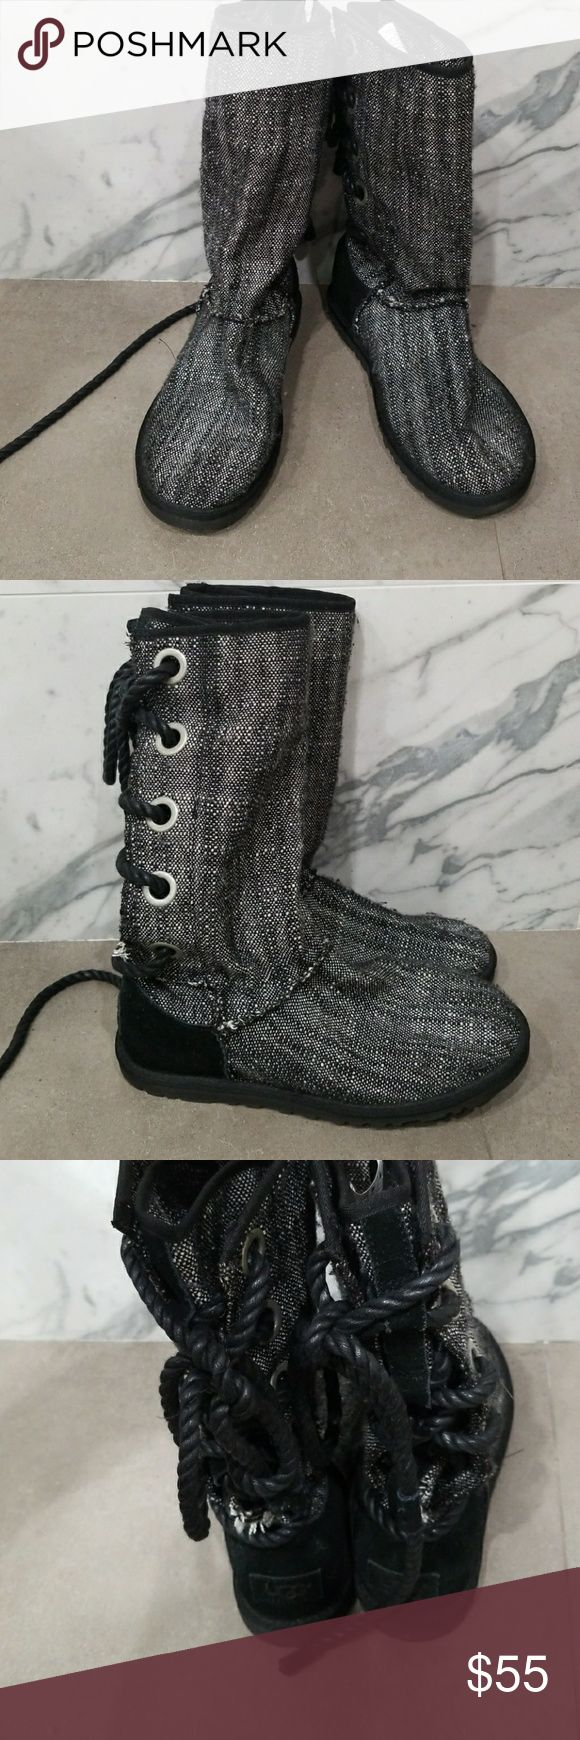 UGG lace up knit boot! Fully sheep lined once worn gorgeous knit UGGs they lace up in the back. Super rare. Small hole behind stitching on boots. See photos.  I bought them like this and did not even notice. Original ugg sticker. Super comfy and warm. Such a fun boot. UGG Shoes Winter & Rain Boots